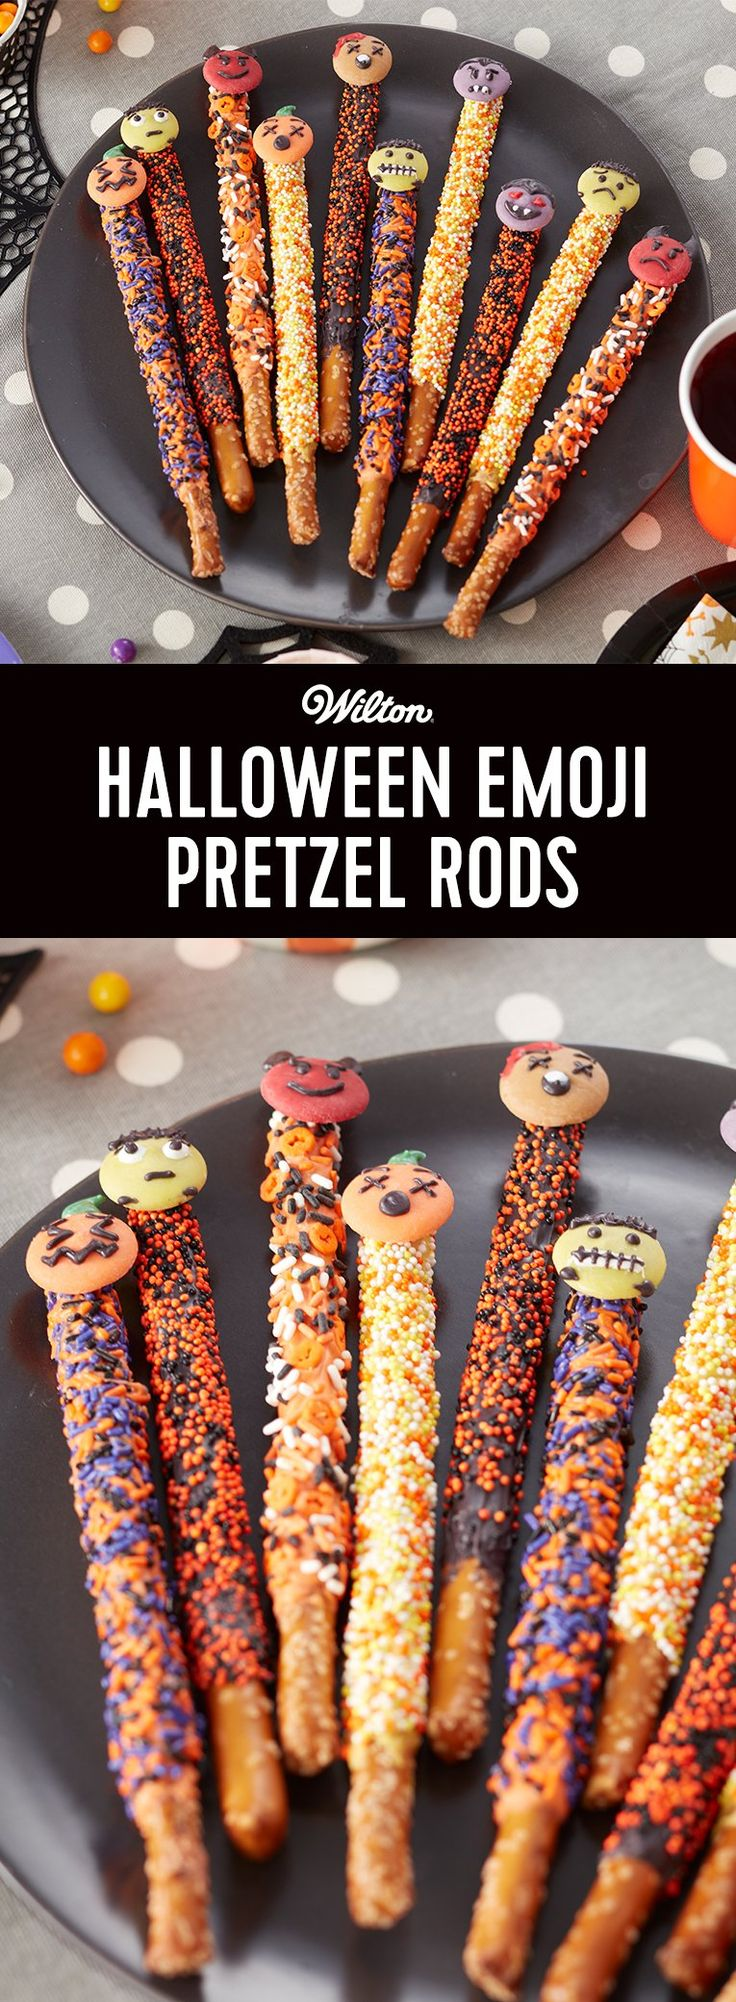 Make fun monster treats for your party with these Halloween Emoji Pretzel Rods. Decorated with festive Halloween sprinkles and topped with cute Candy Melts candy monsters, these pretzel rods are a fun treat for kids and adults alike. Add them to a sweets table or wrap them in treat bags and hand out as party favors. Easy to make for decorators of all skill levels, these Halloween pretzel rods are a fun way to bring your favorite emojis to life!